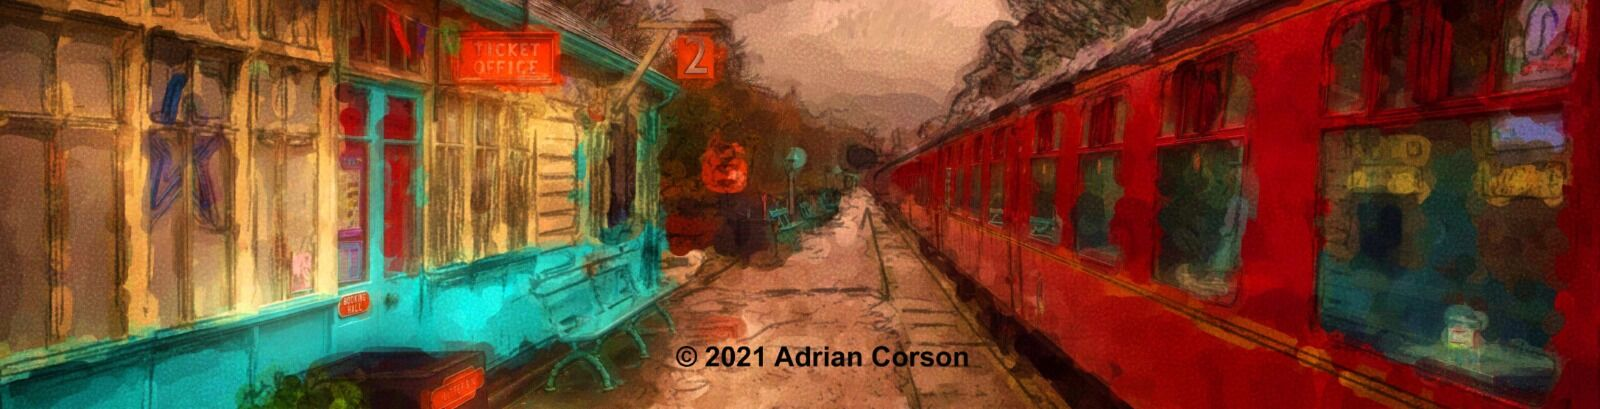 143-at the station